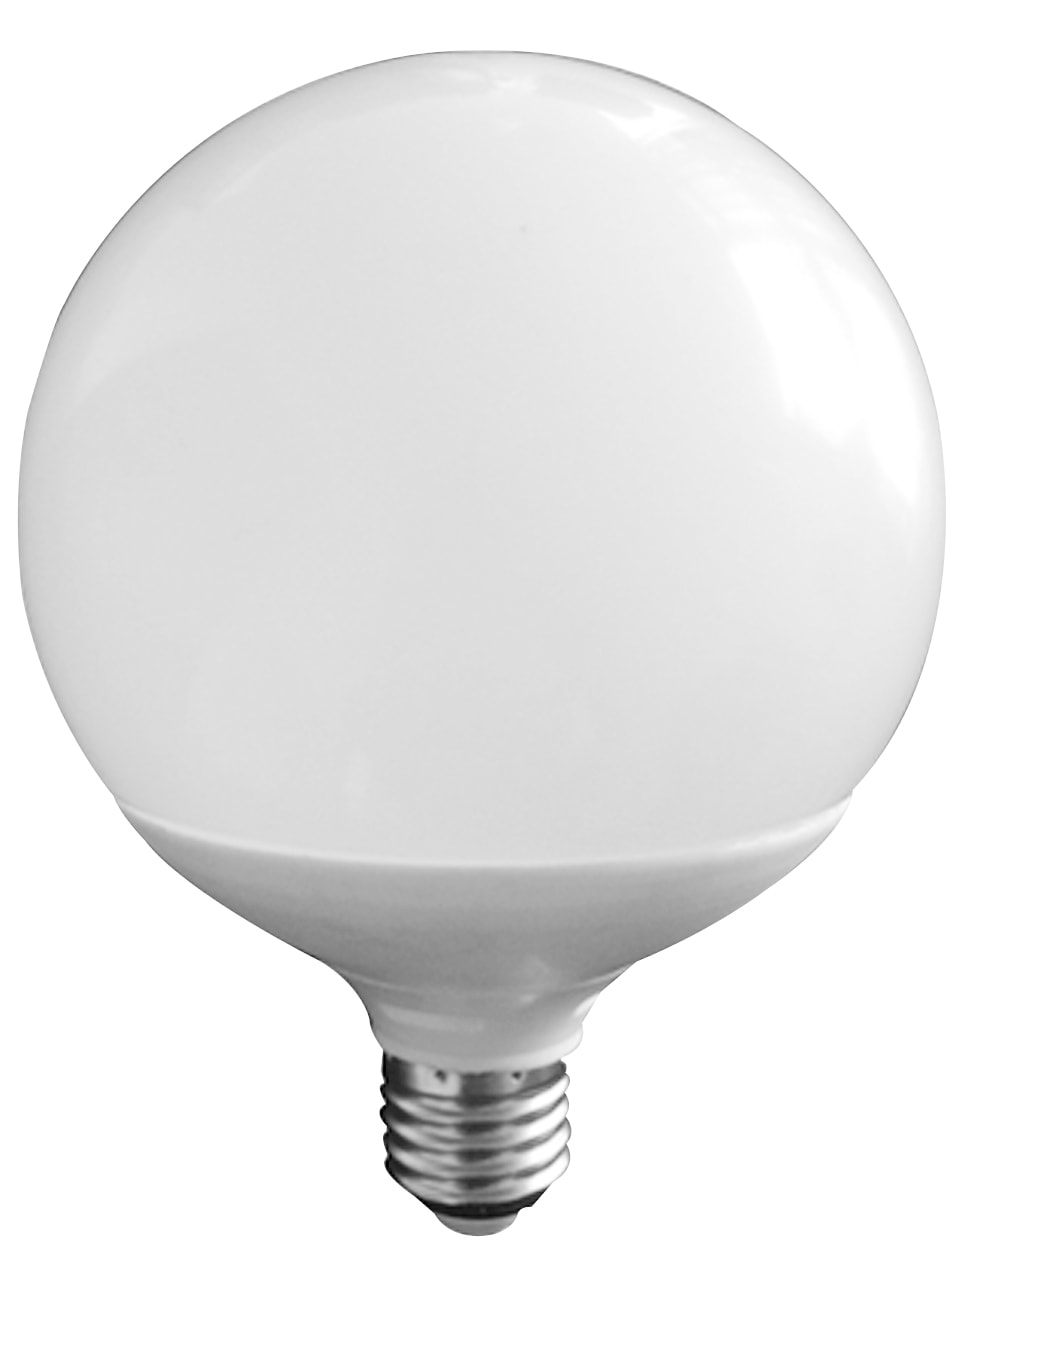 Lampadina 15watt a led globo attacco e27 ecoworld for Lampadina e 27